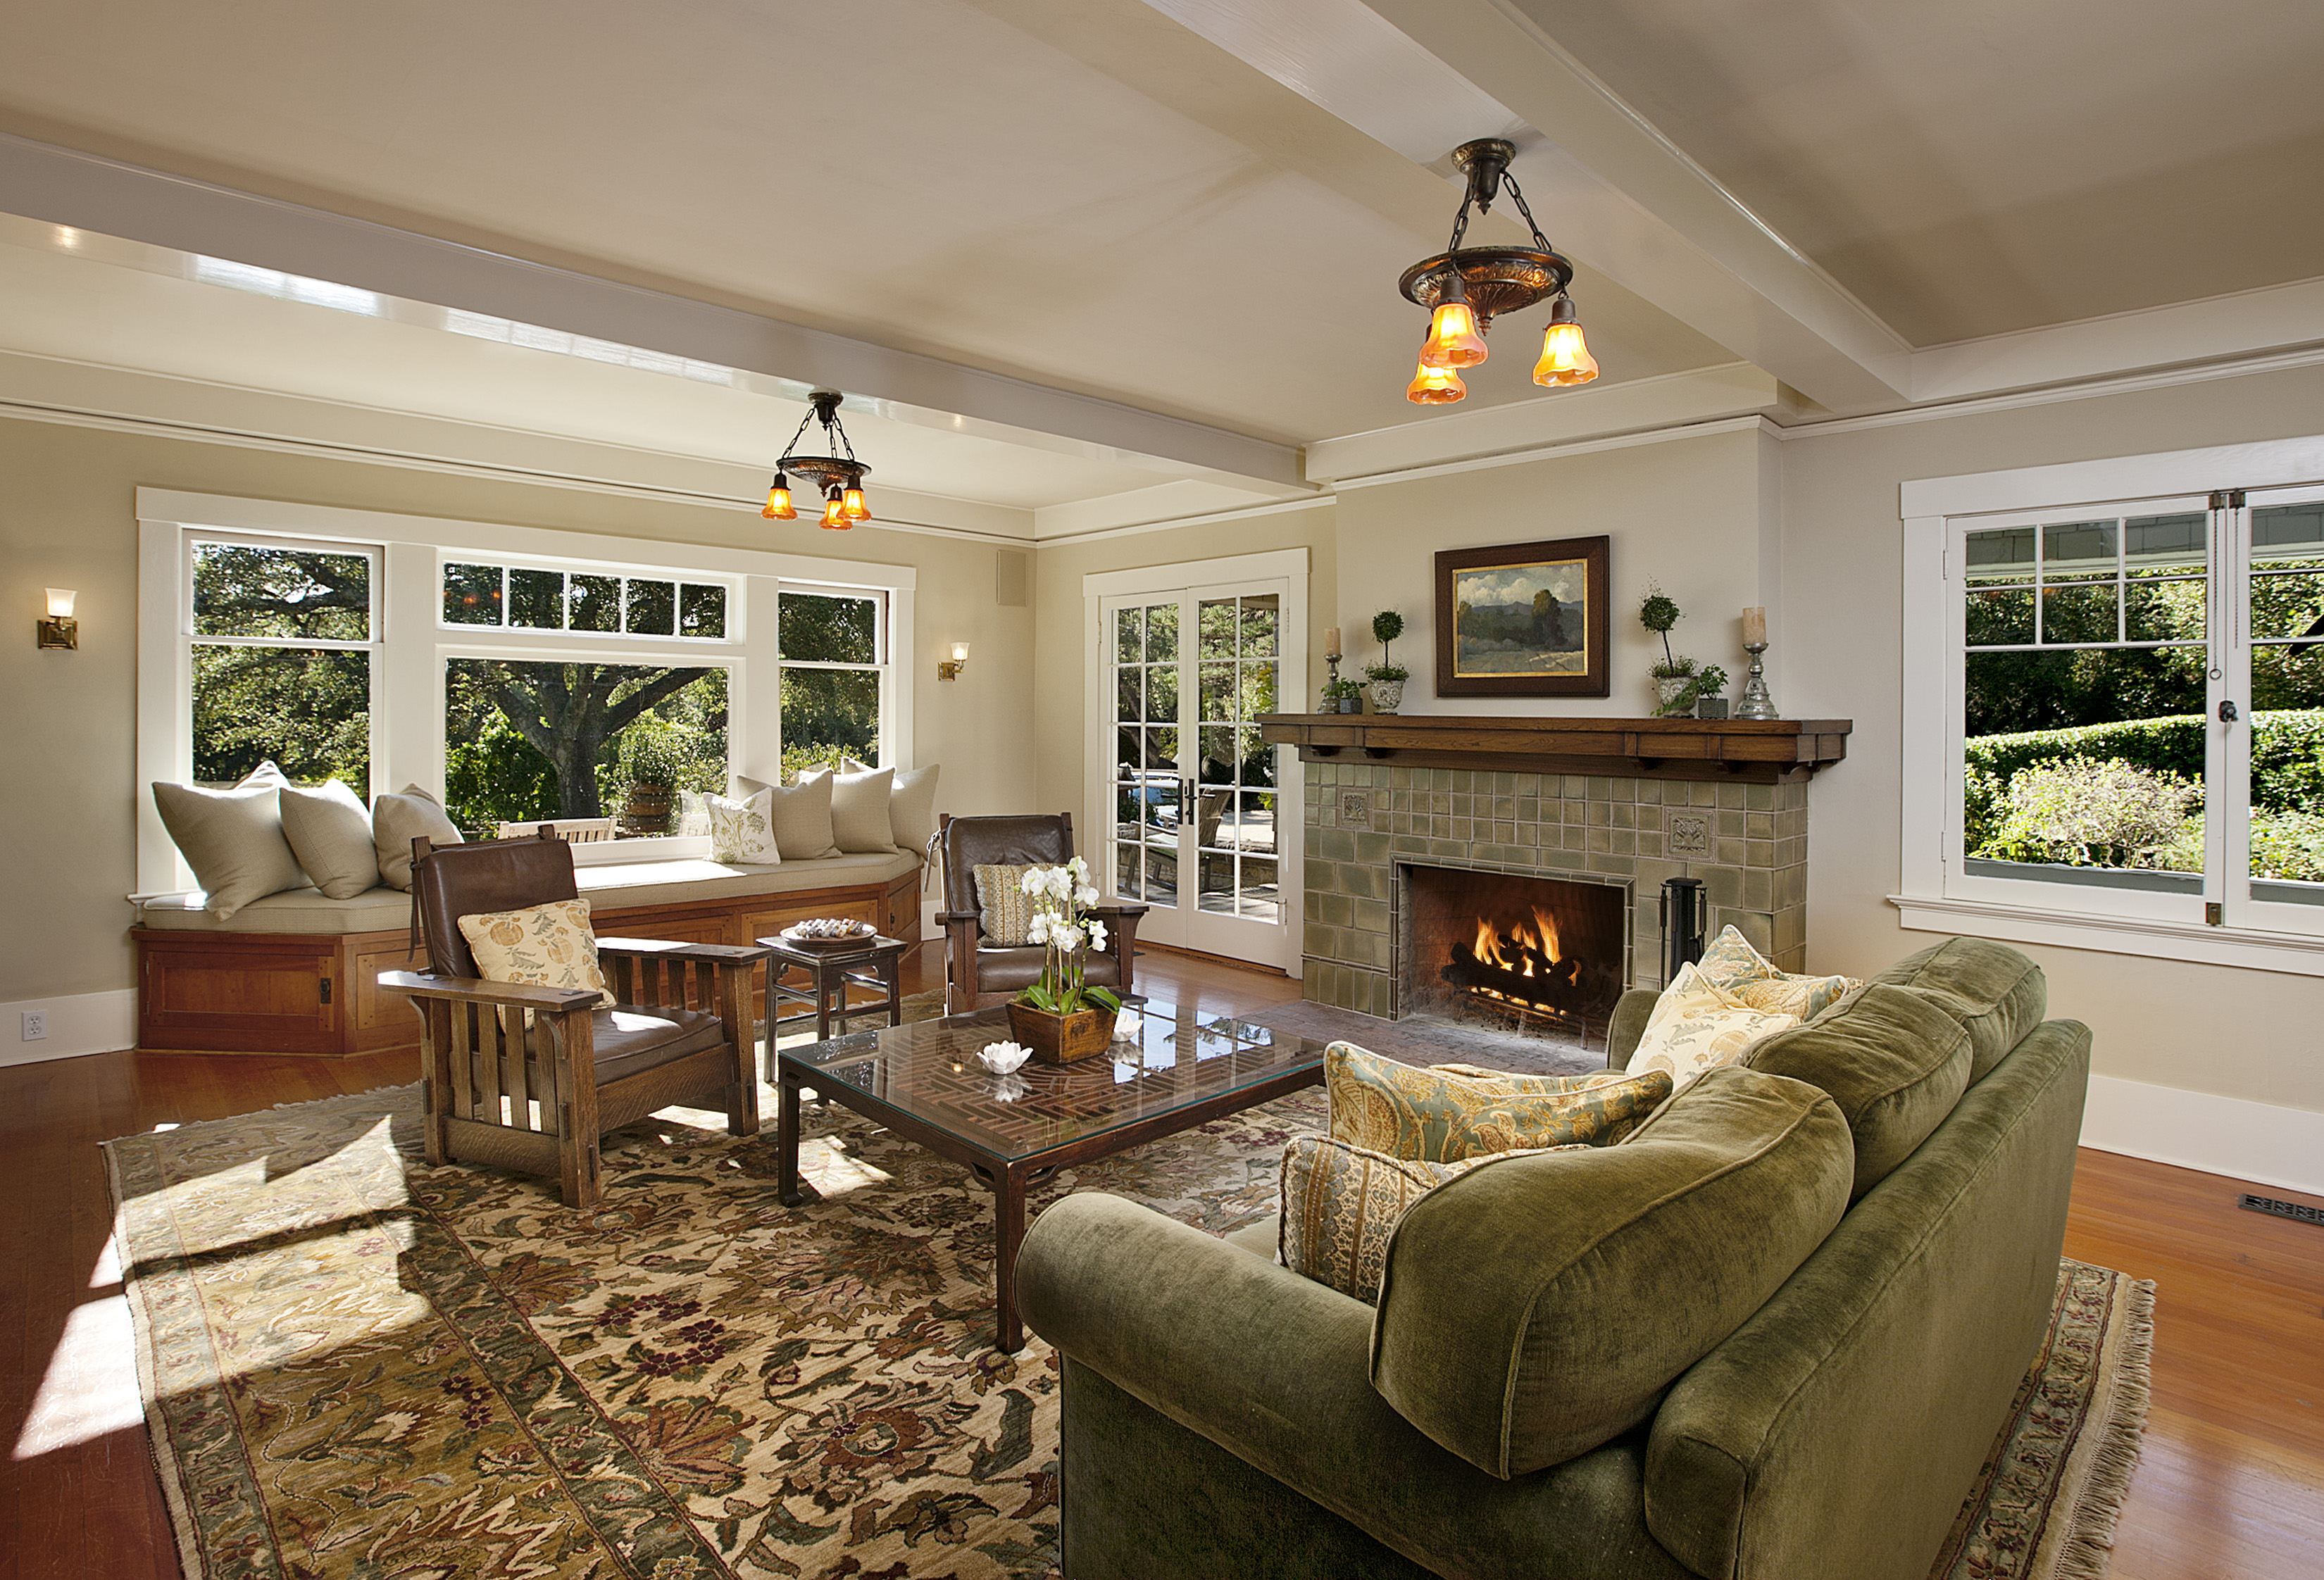 Popular home styles for 2012 montecito real estate - House interior design ideas pictures ...